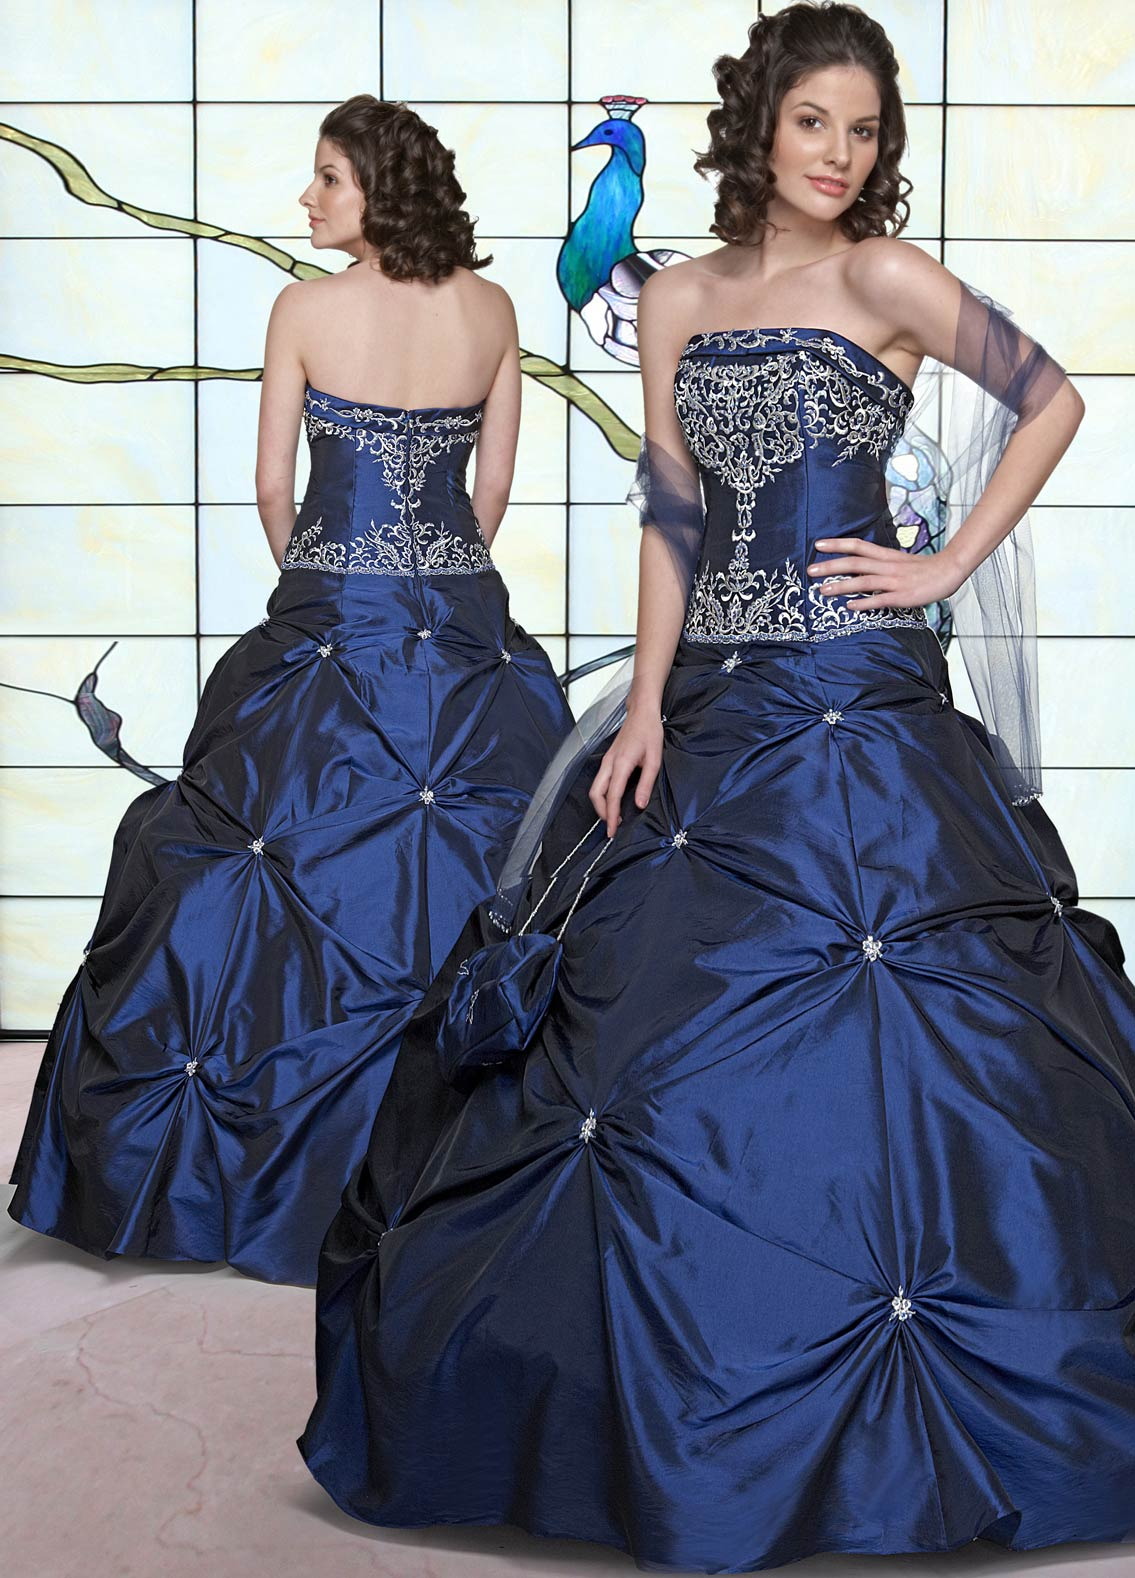 01d0b92f624 Hot Sale Royal Blue Ball Gown Strapless Zipper Full Length Beading  Embroidered Quinceanera Dresses